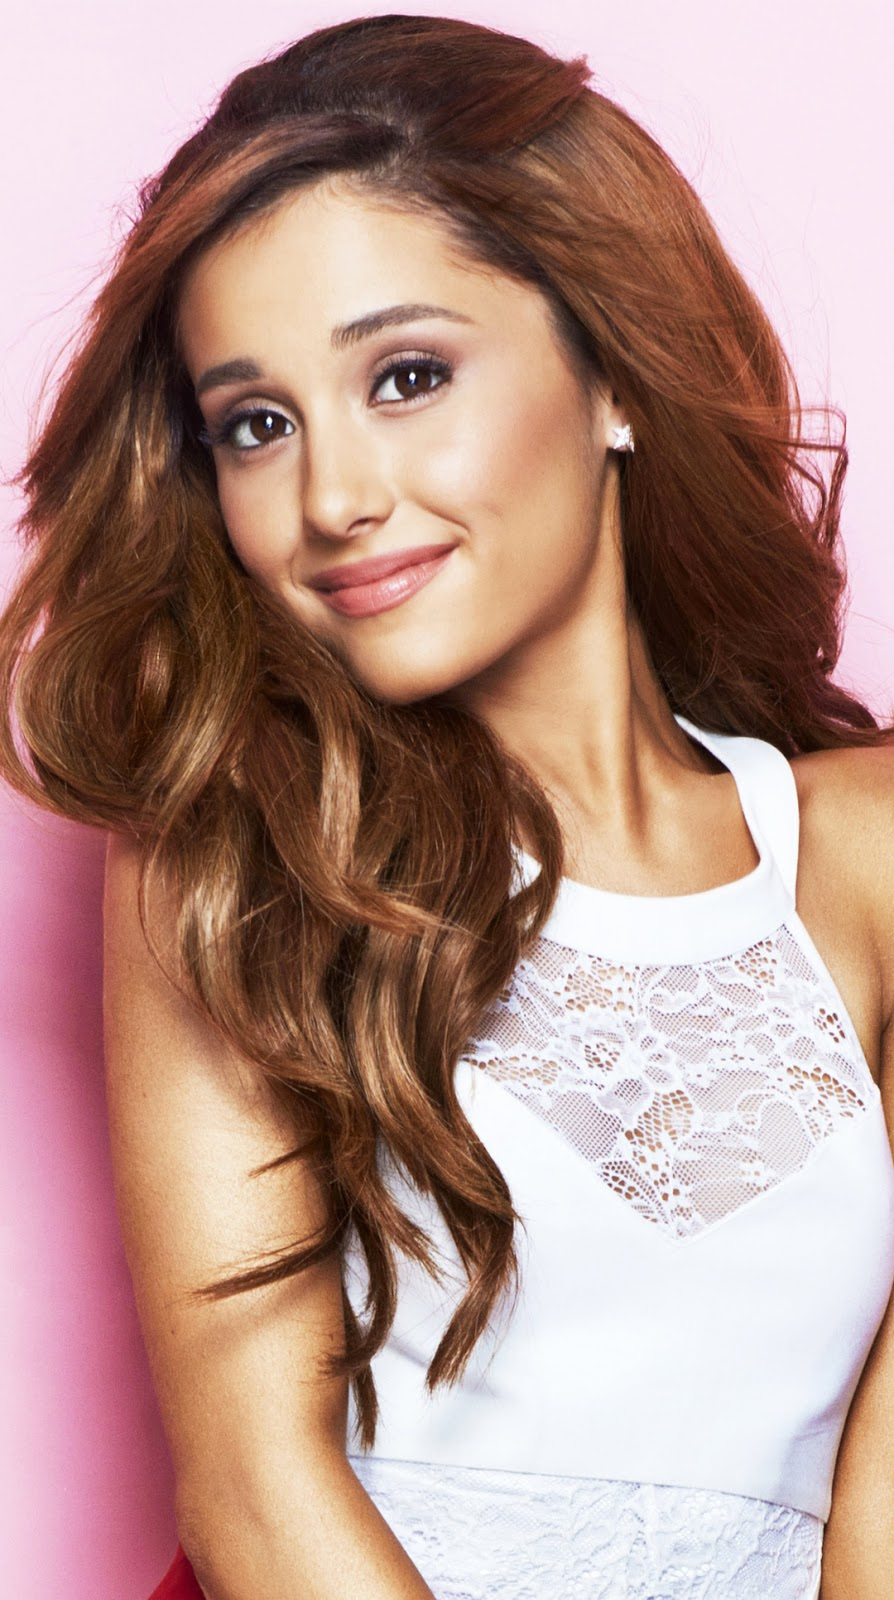 Ariana Grande Biography and Amazing Photos